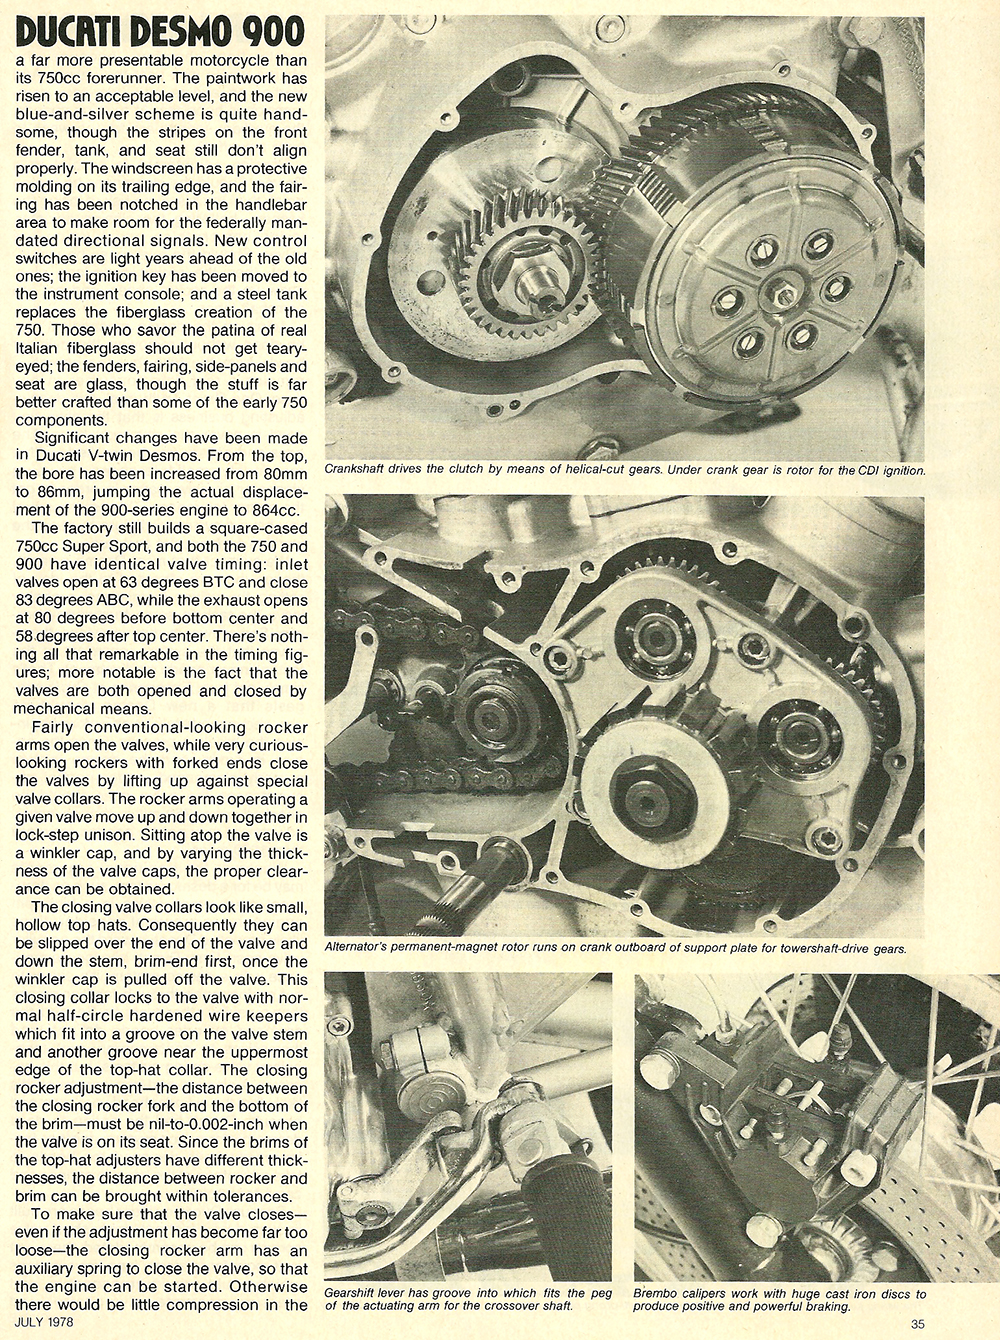 1978 Ducati Desmo 900 Super Sport road test 04.jpg